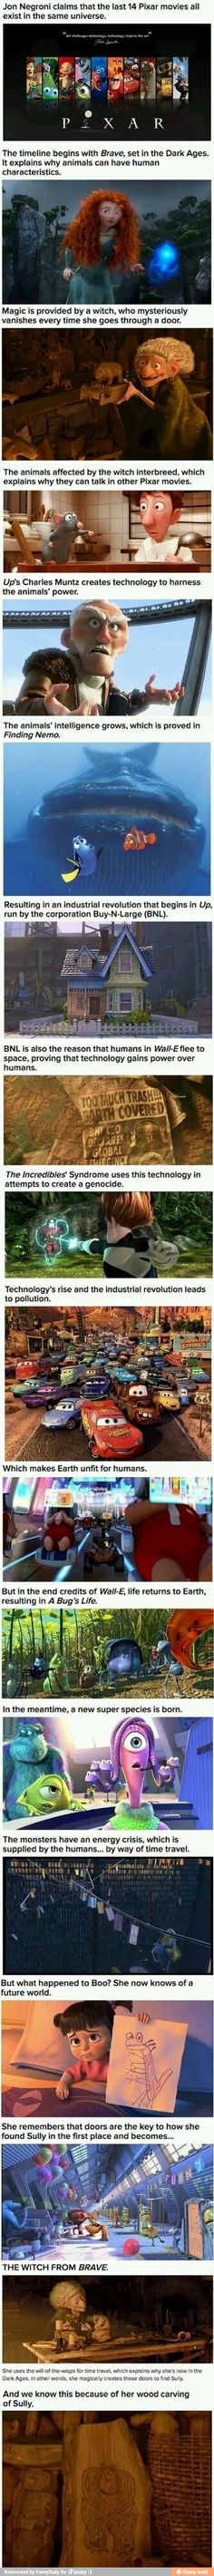 Mind Blown! The Pixar movies all make sense